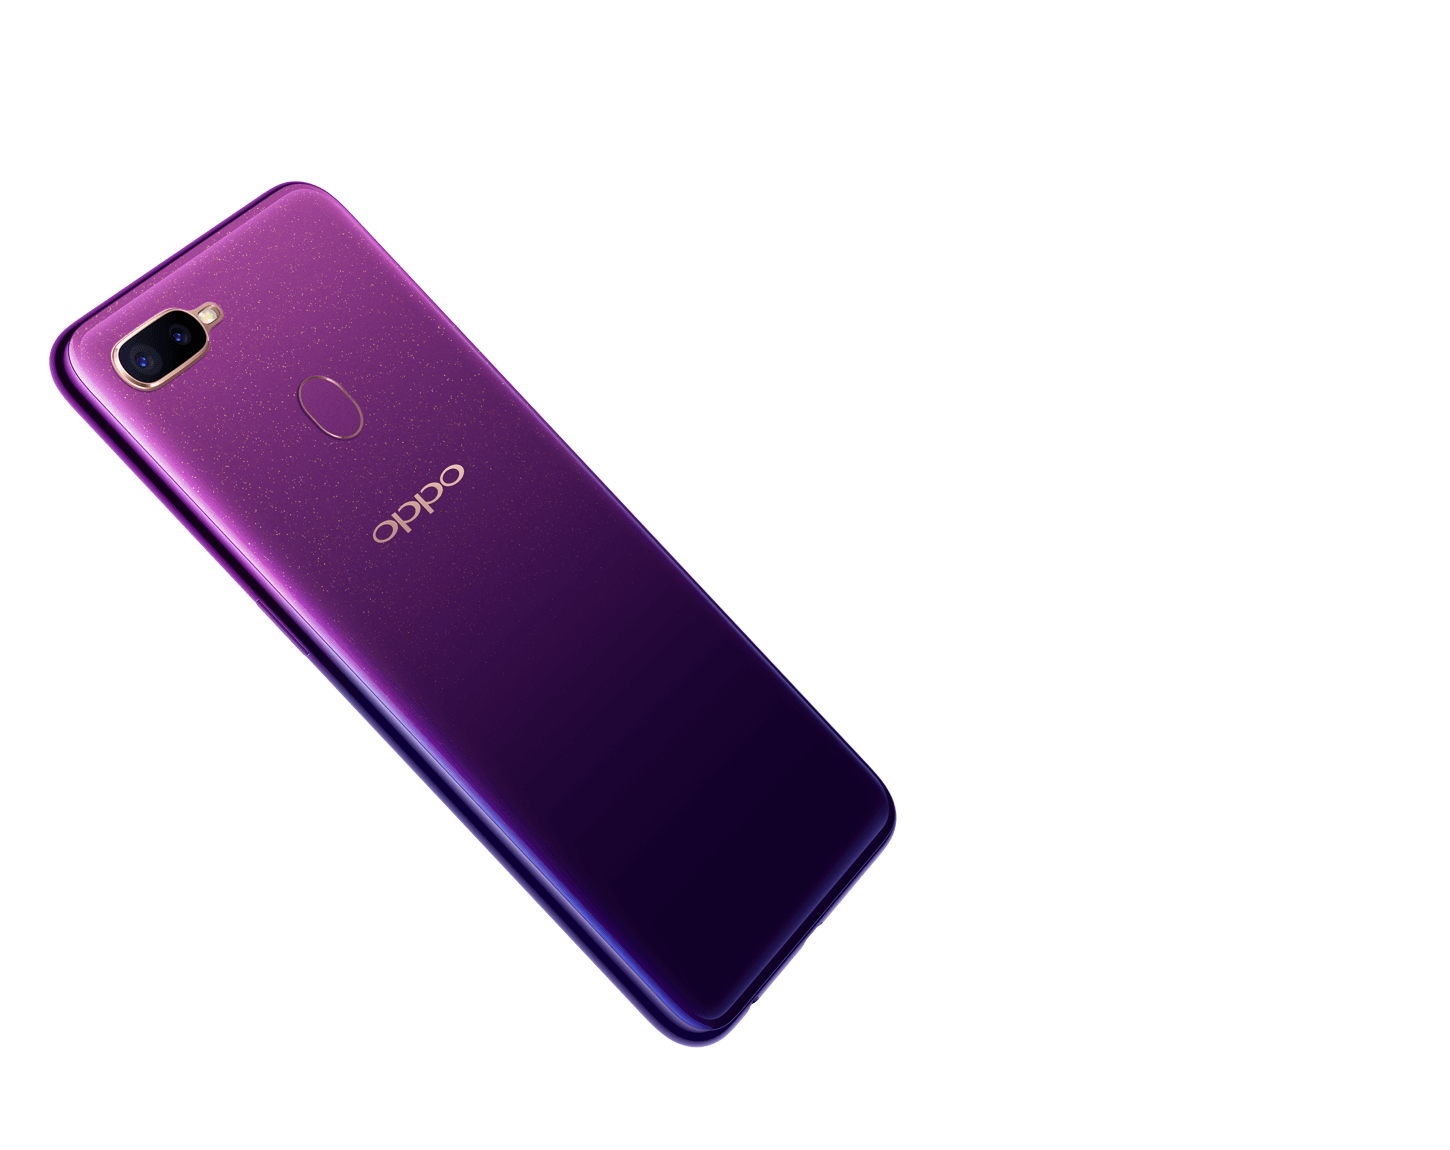 OPPO F9 Pro Starry Purple Edition - Explore and Discover the Starry Night